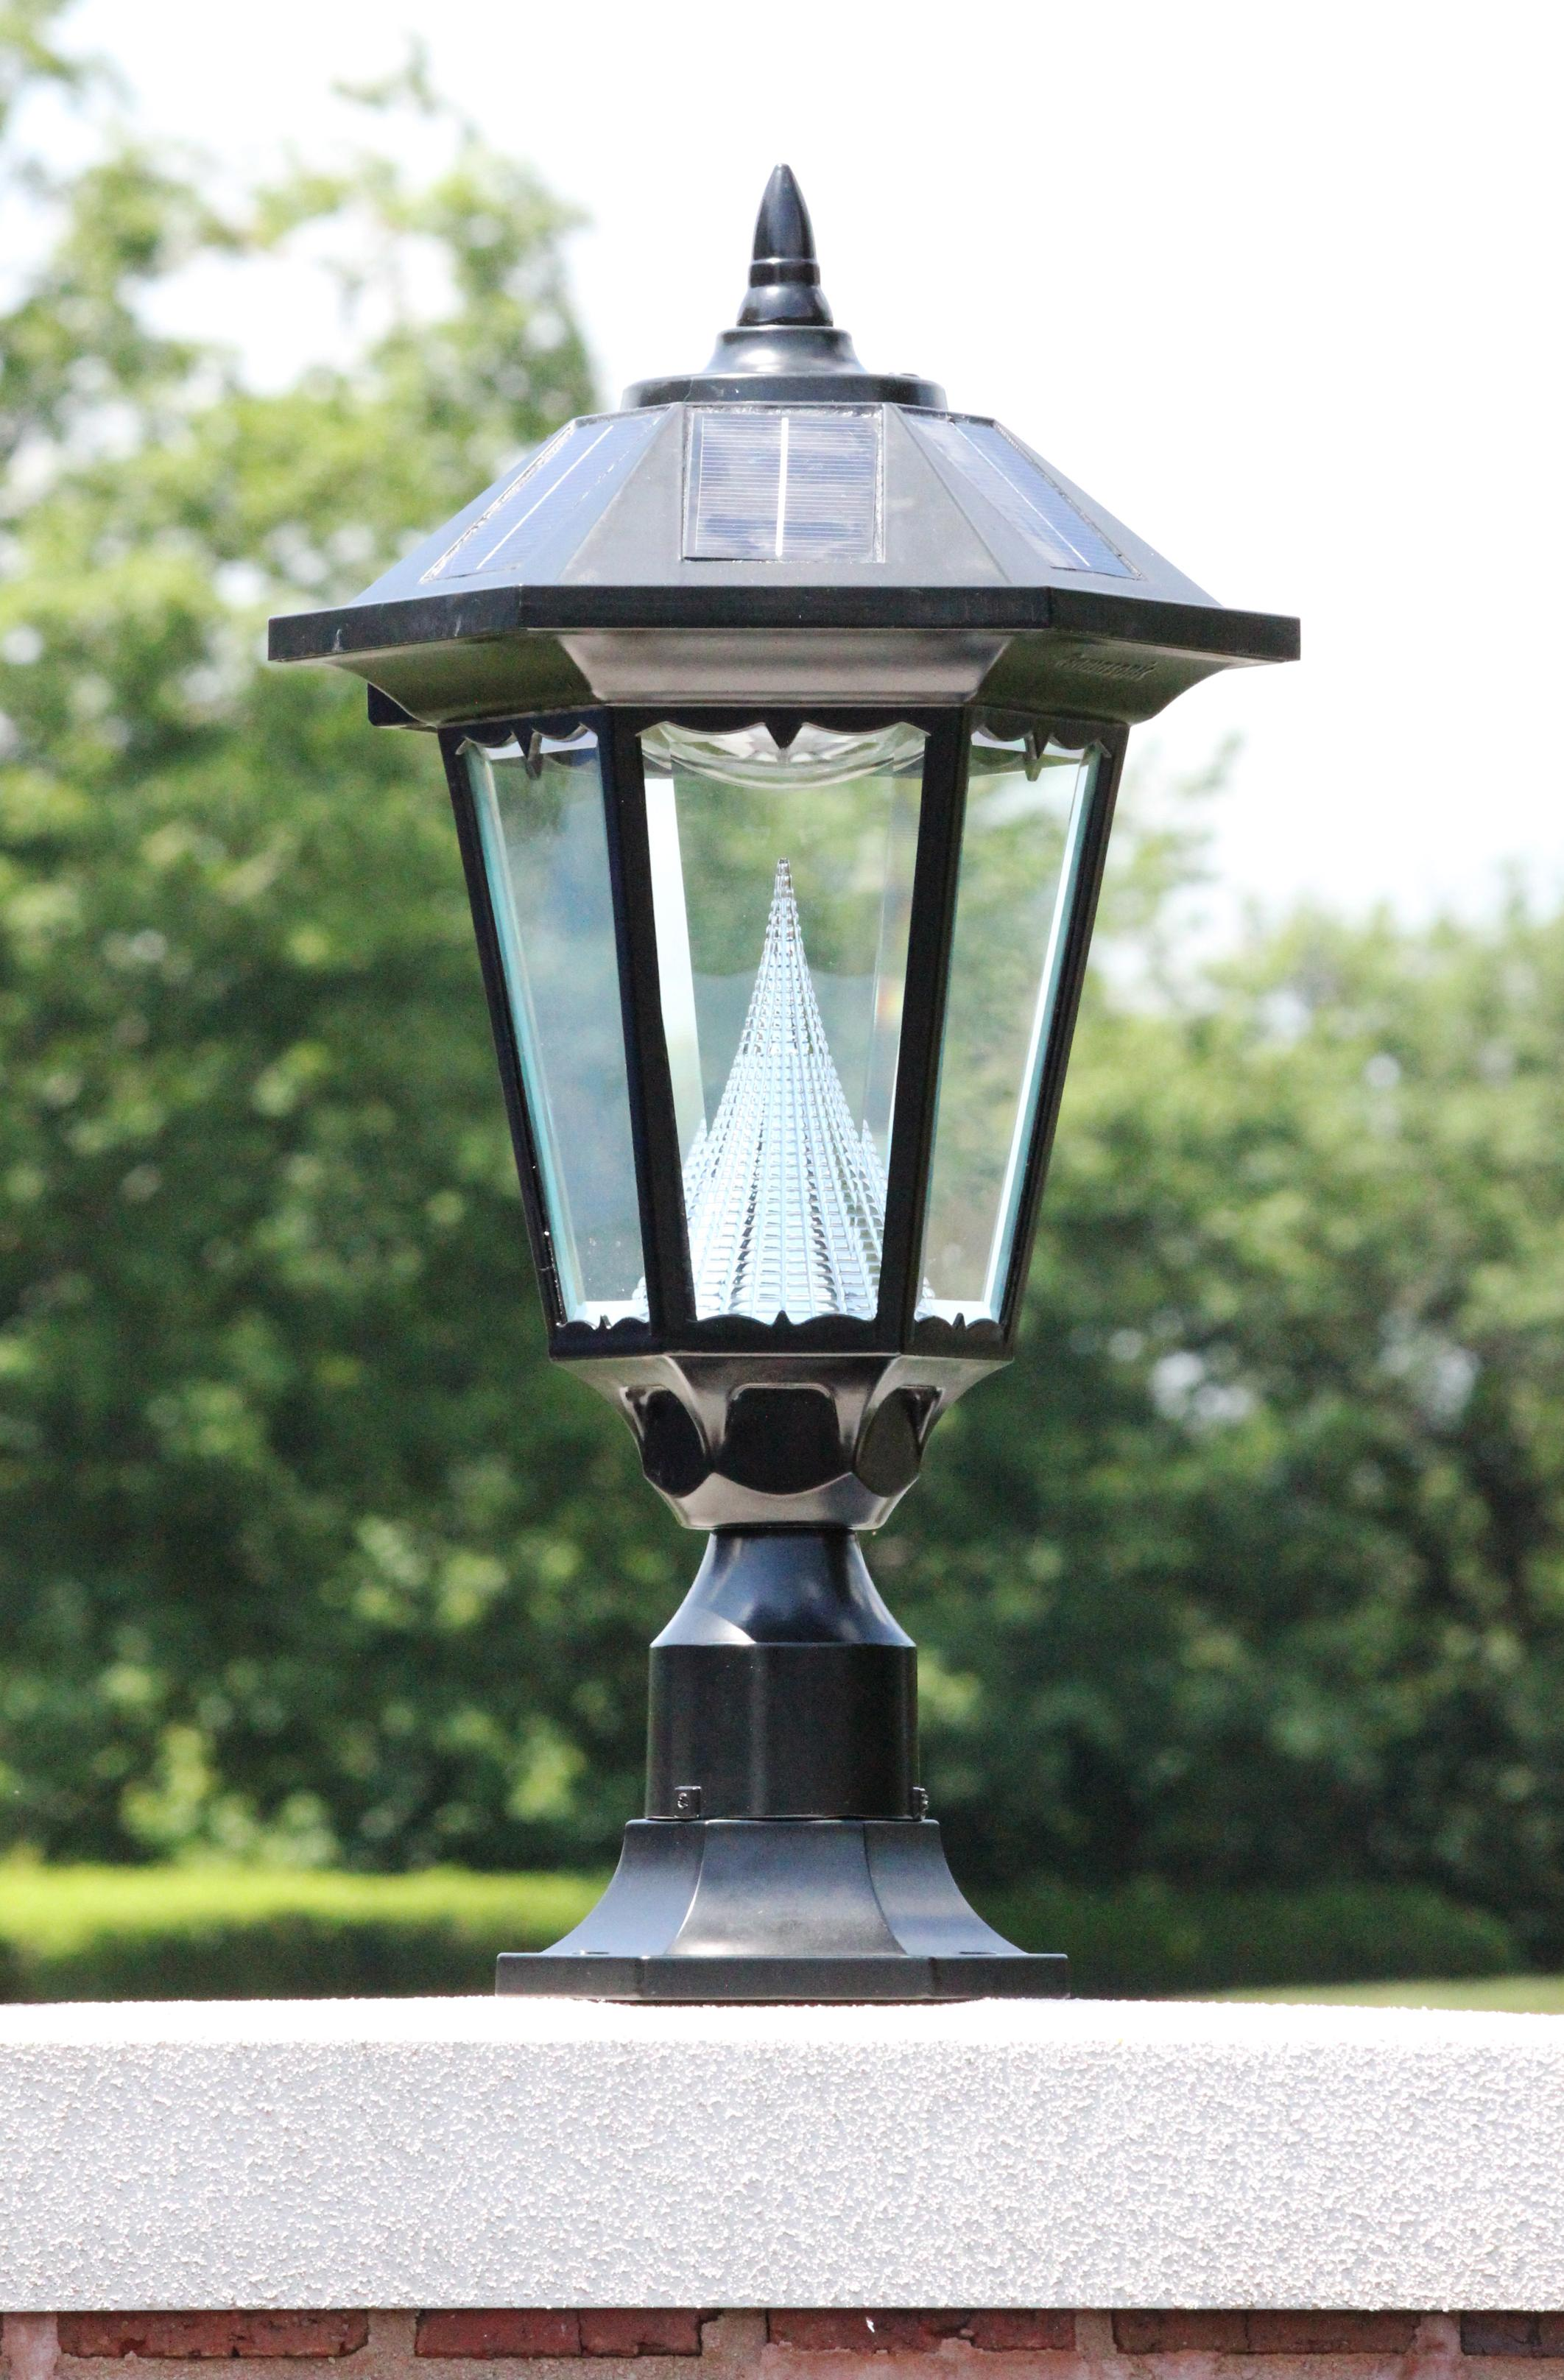 Amazon.com : Gama Sonic Windsor Solar Outdoor LED Light Fixture, 3 ...